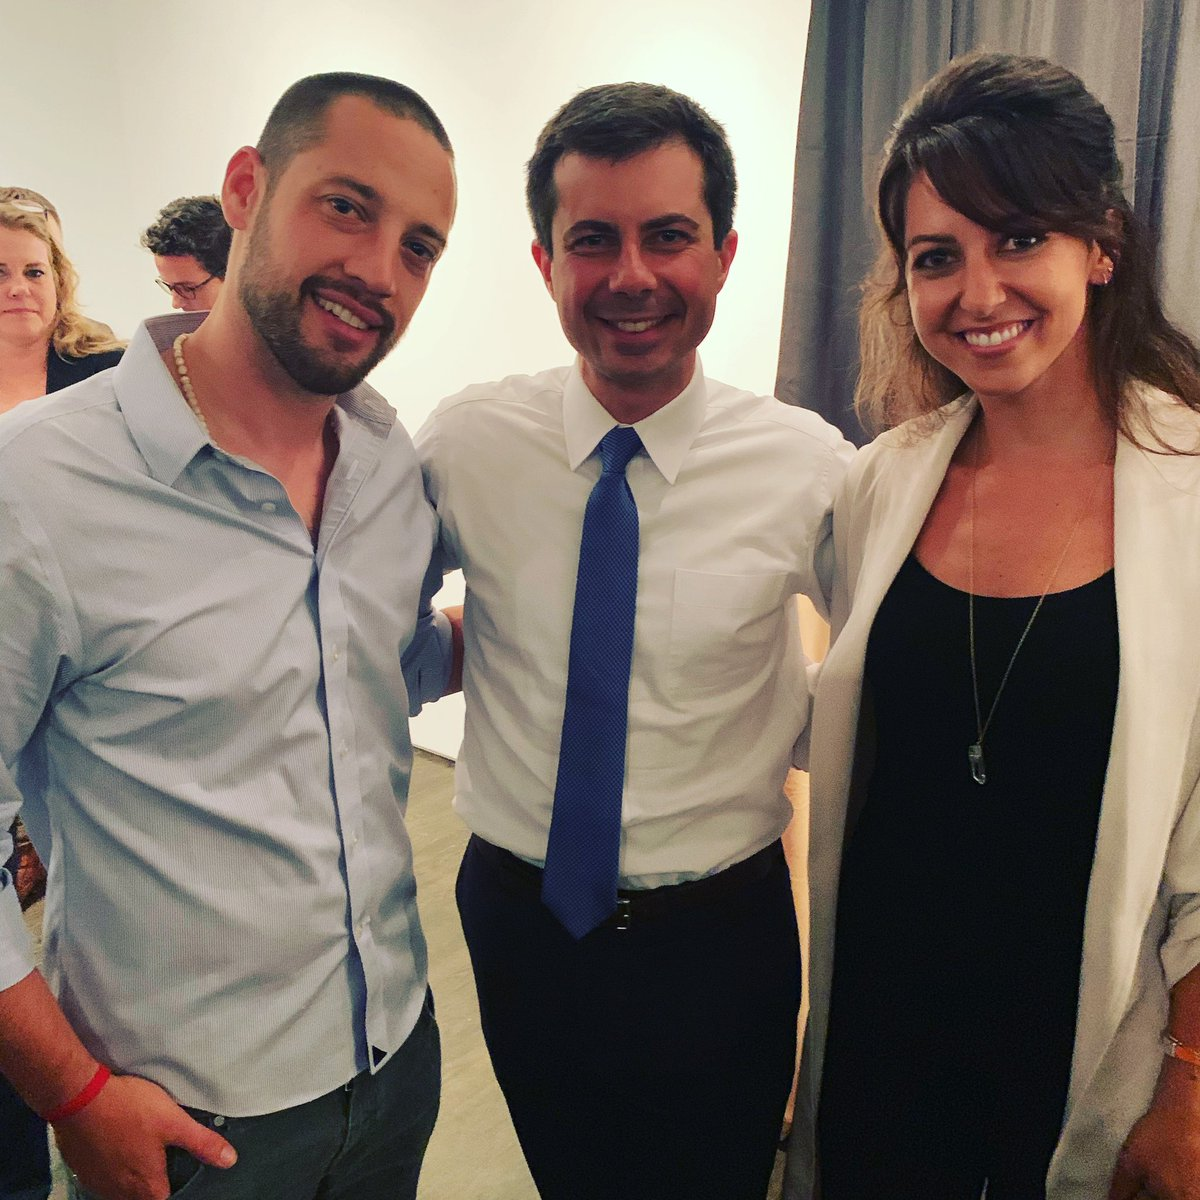 It was nice seeing @PeteButtigieg Thursday. He's a decent man with a strong moral compass. He avoids vitriol and speaks to underlying issues. It's good to see people led by empathy like him and @AndrewYang in this race.